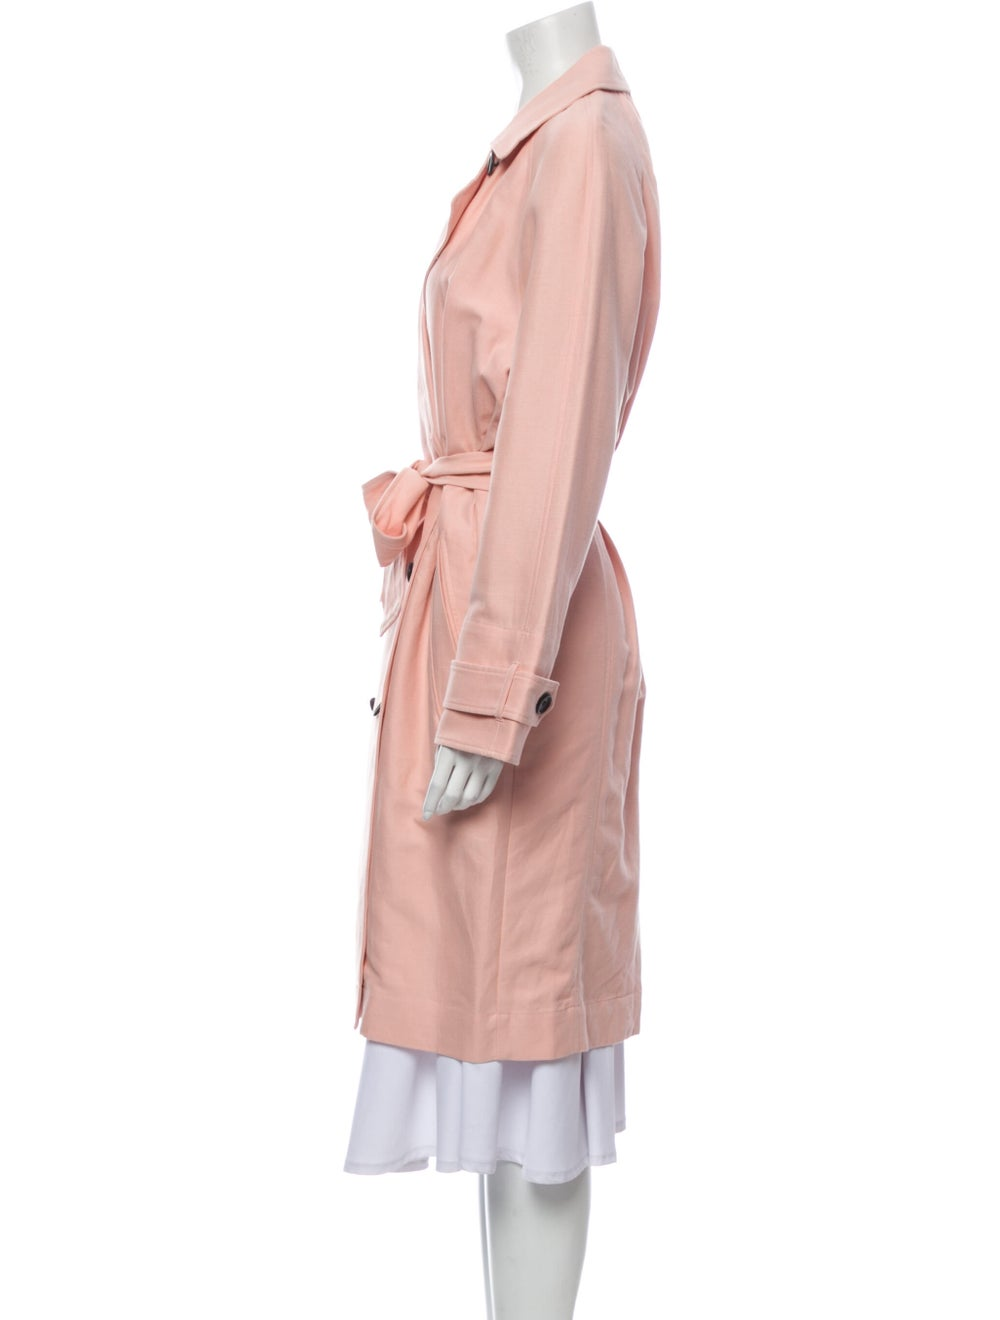 Joie Trench Coat Pink - image 2